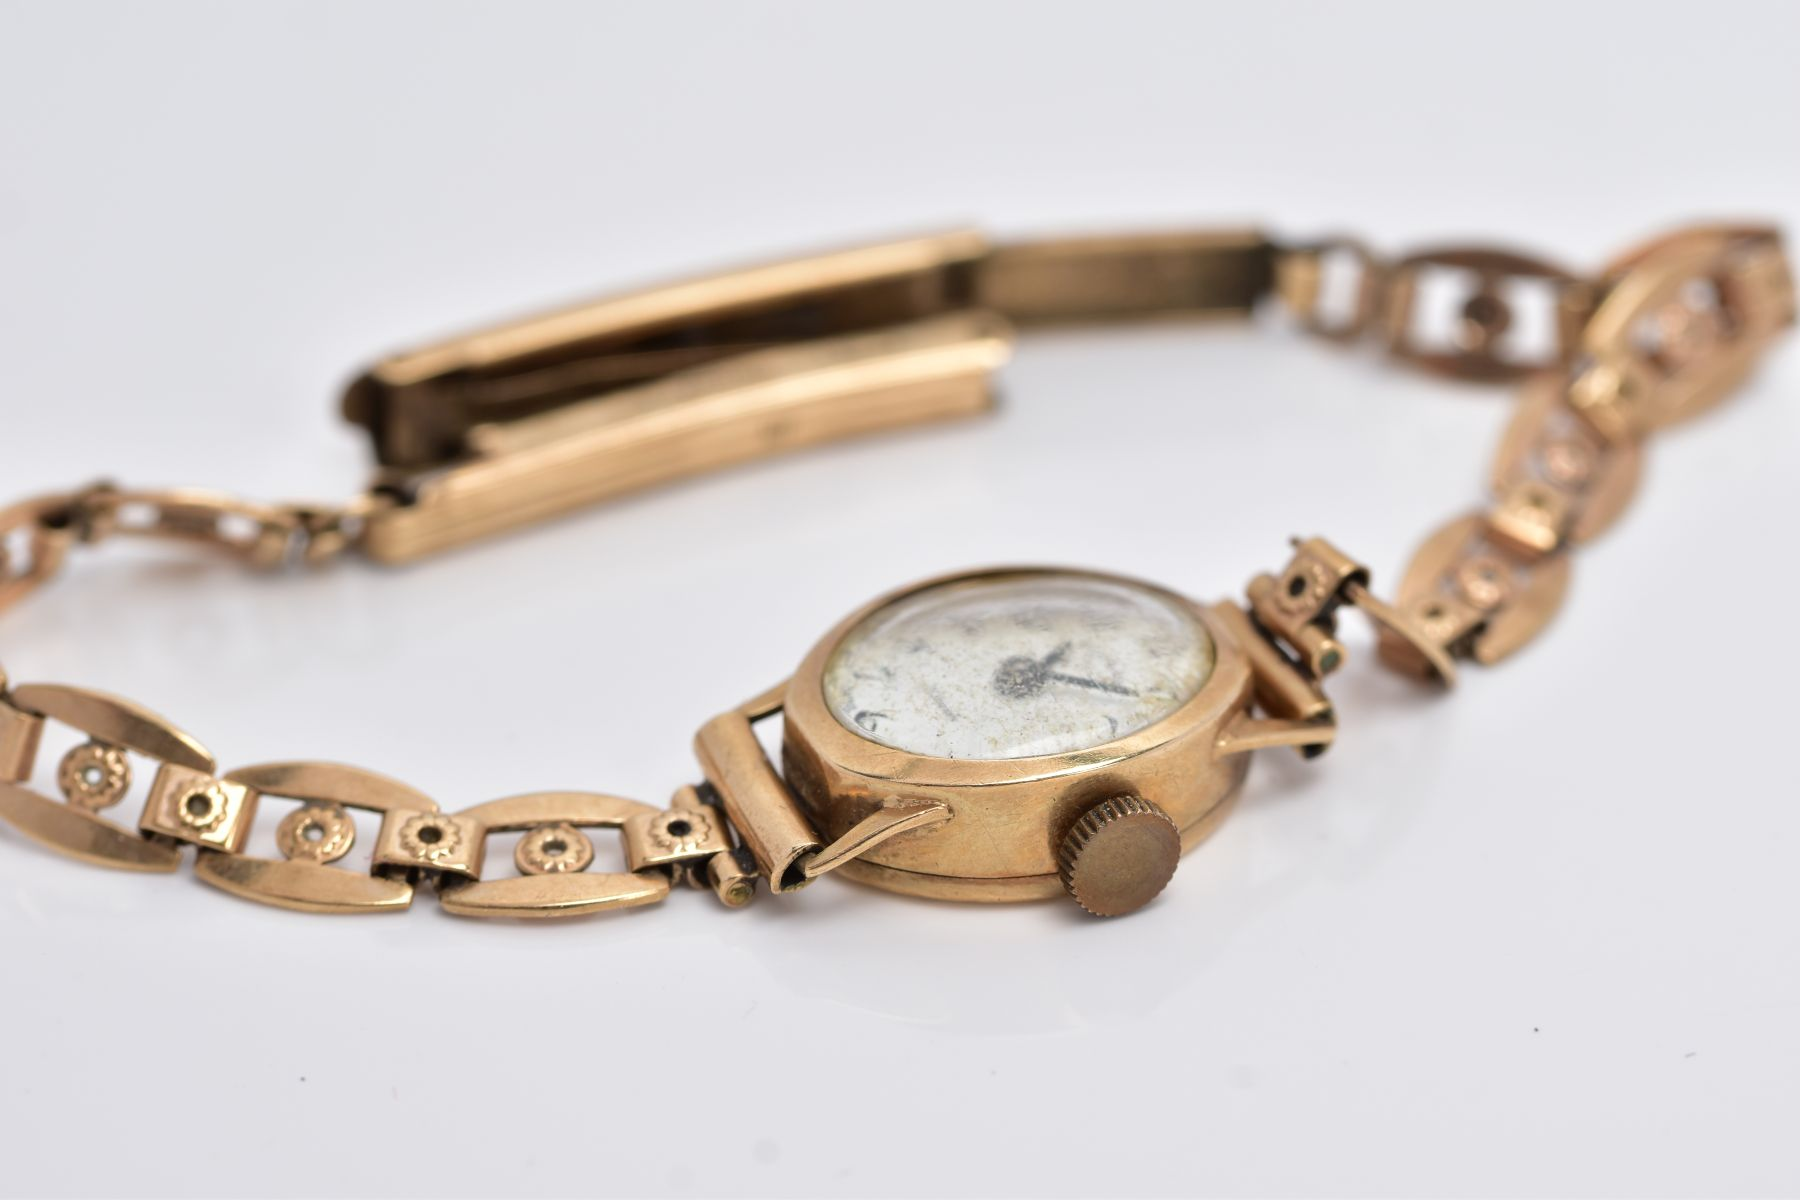 A LADY'S 9CT GOLD ROTARY WRISTWATCH', oval case measuring approximately 16.5mm x 14.0mm, - Image 5 of 5